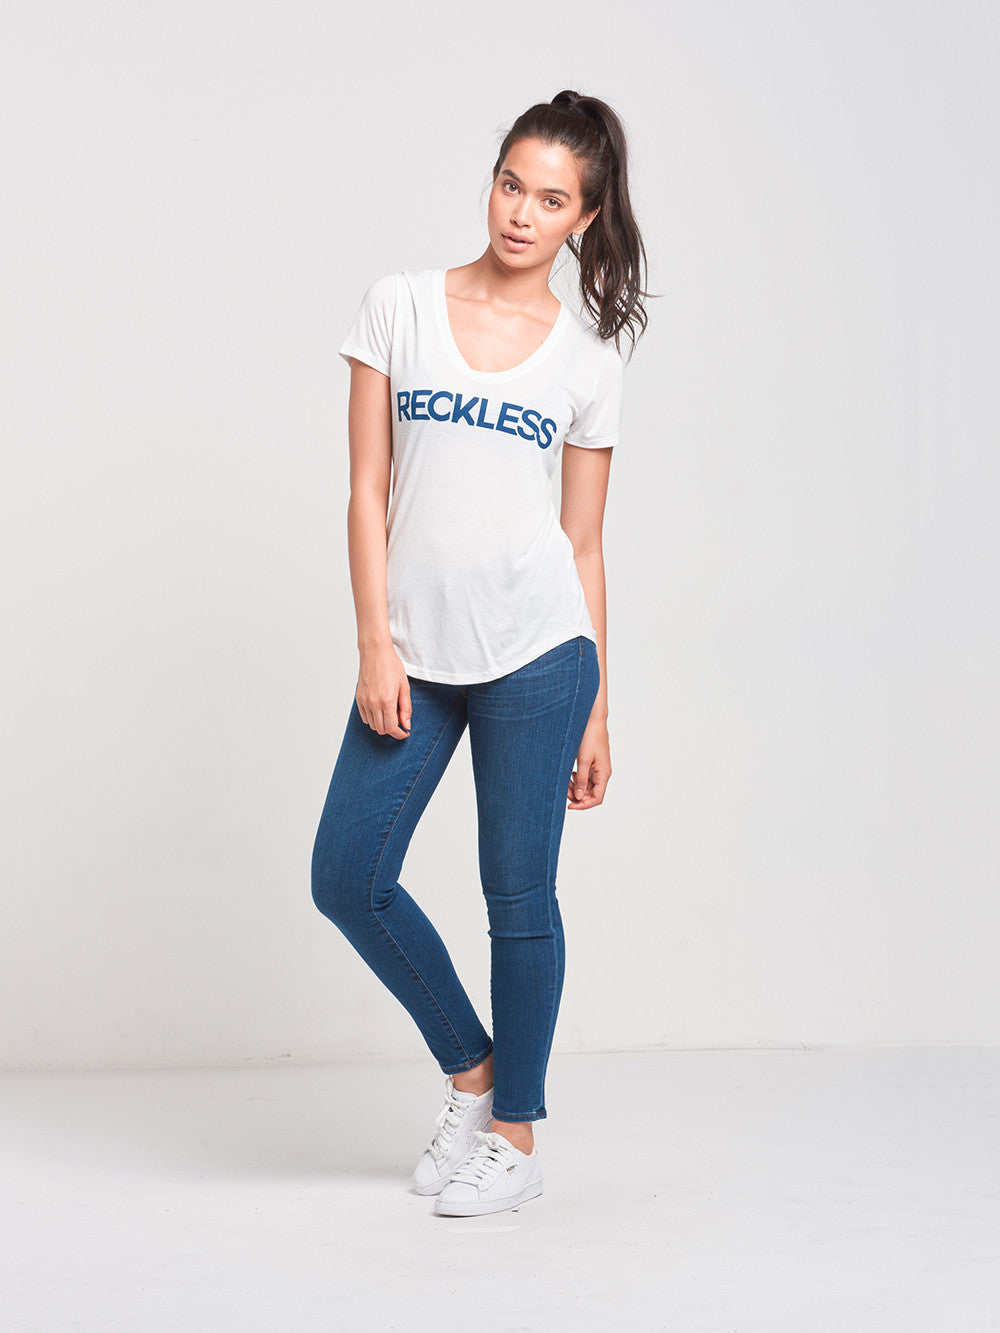 Reckless Girls Womens - Tops - Tees Curves Scoop Neck Tee- White